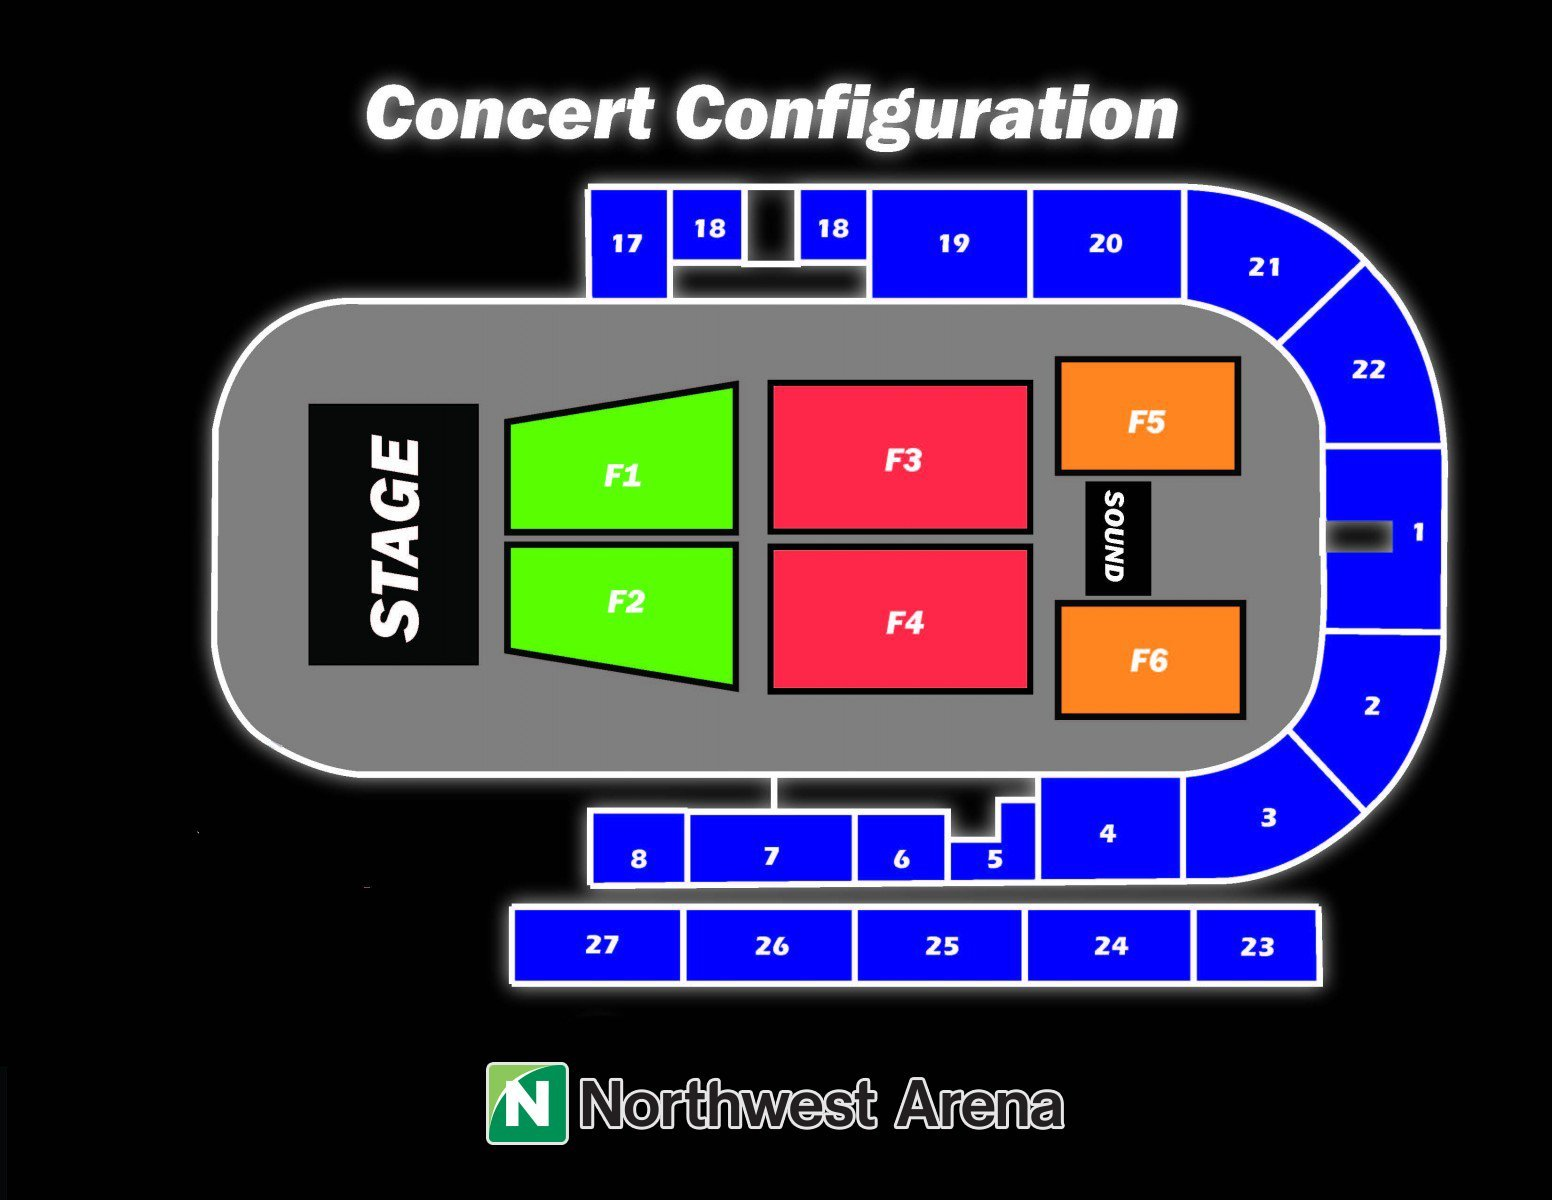 Seating Configuration Chart for Concerts